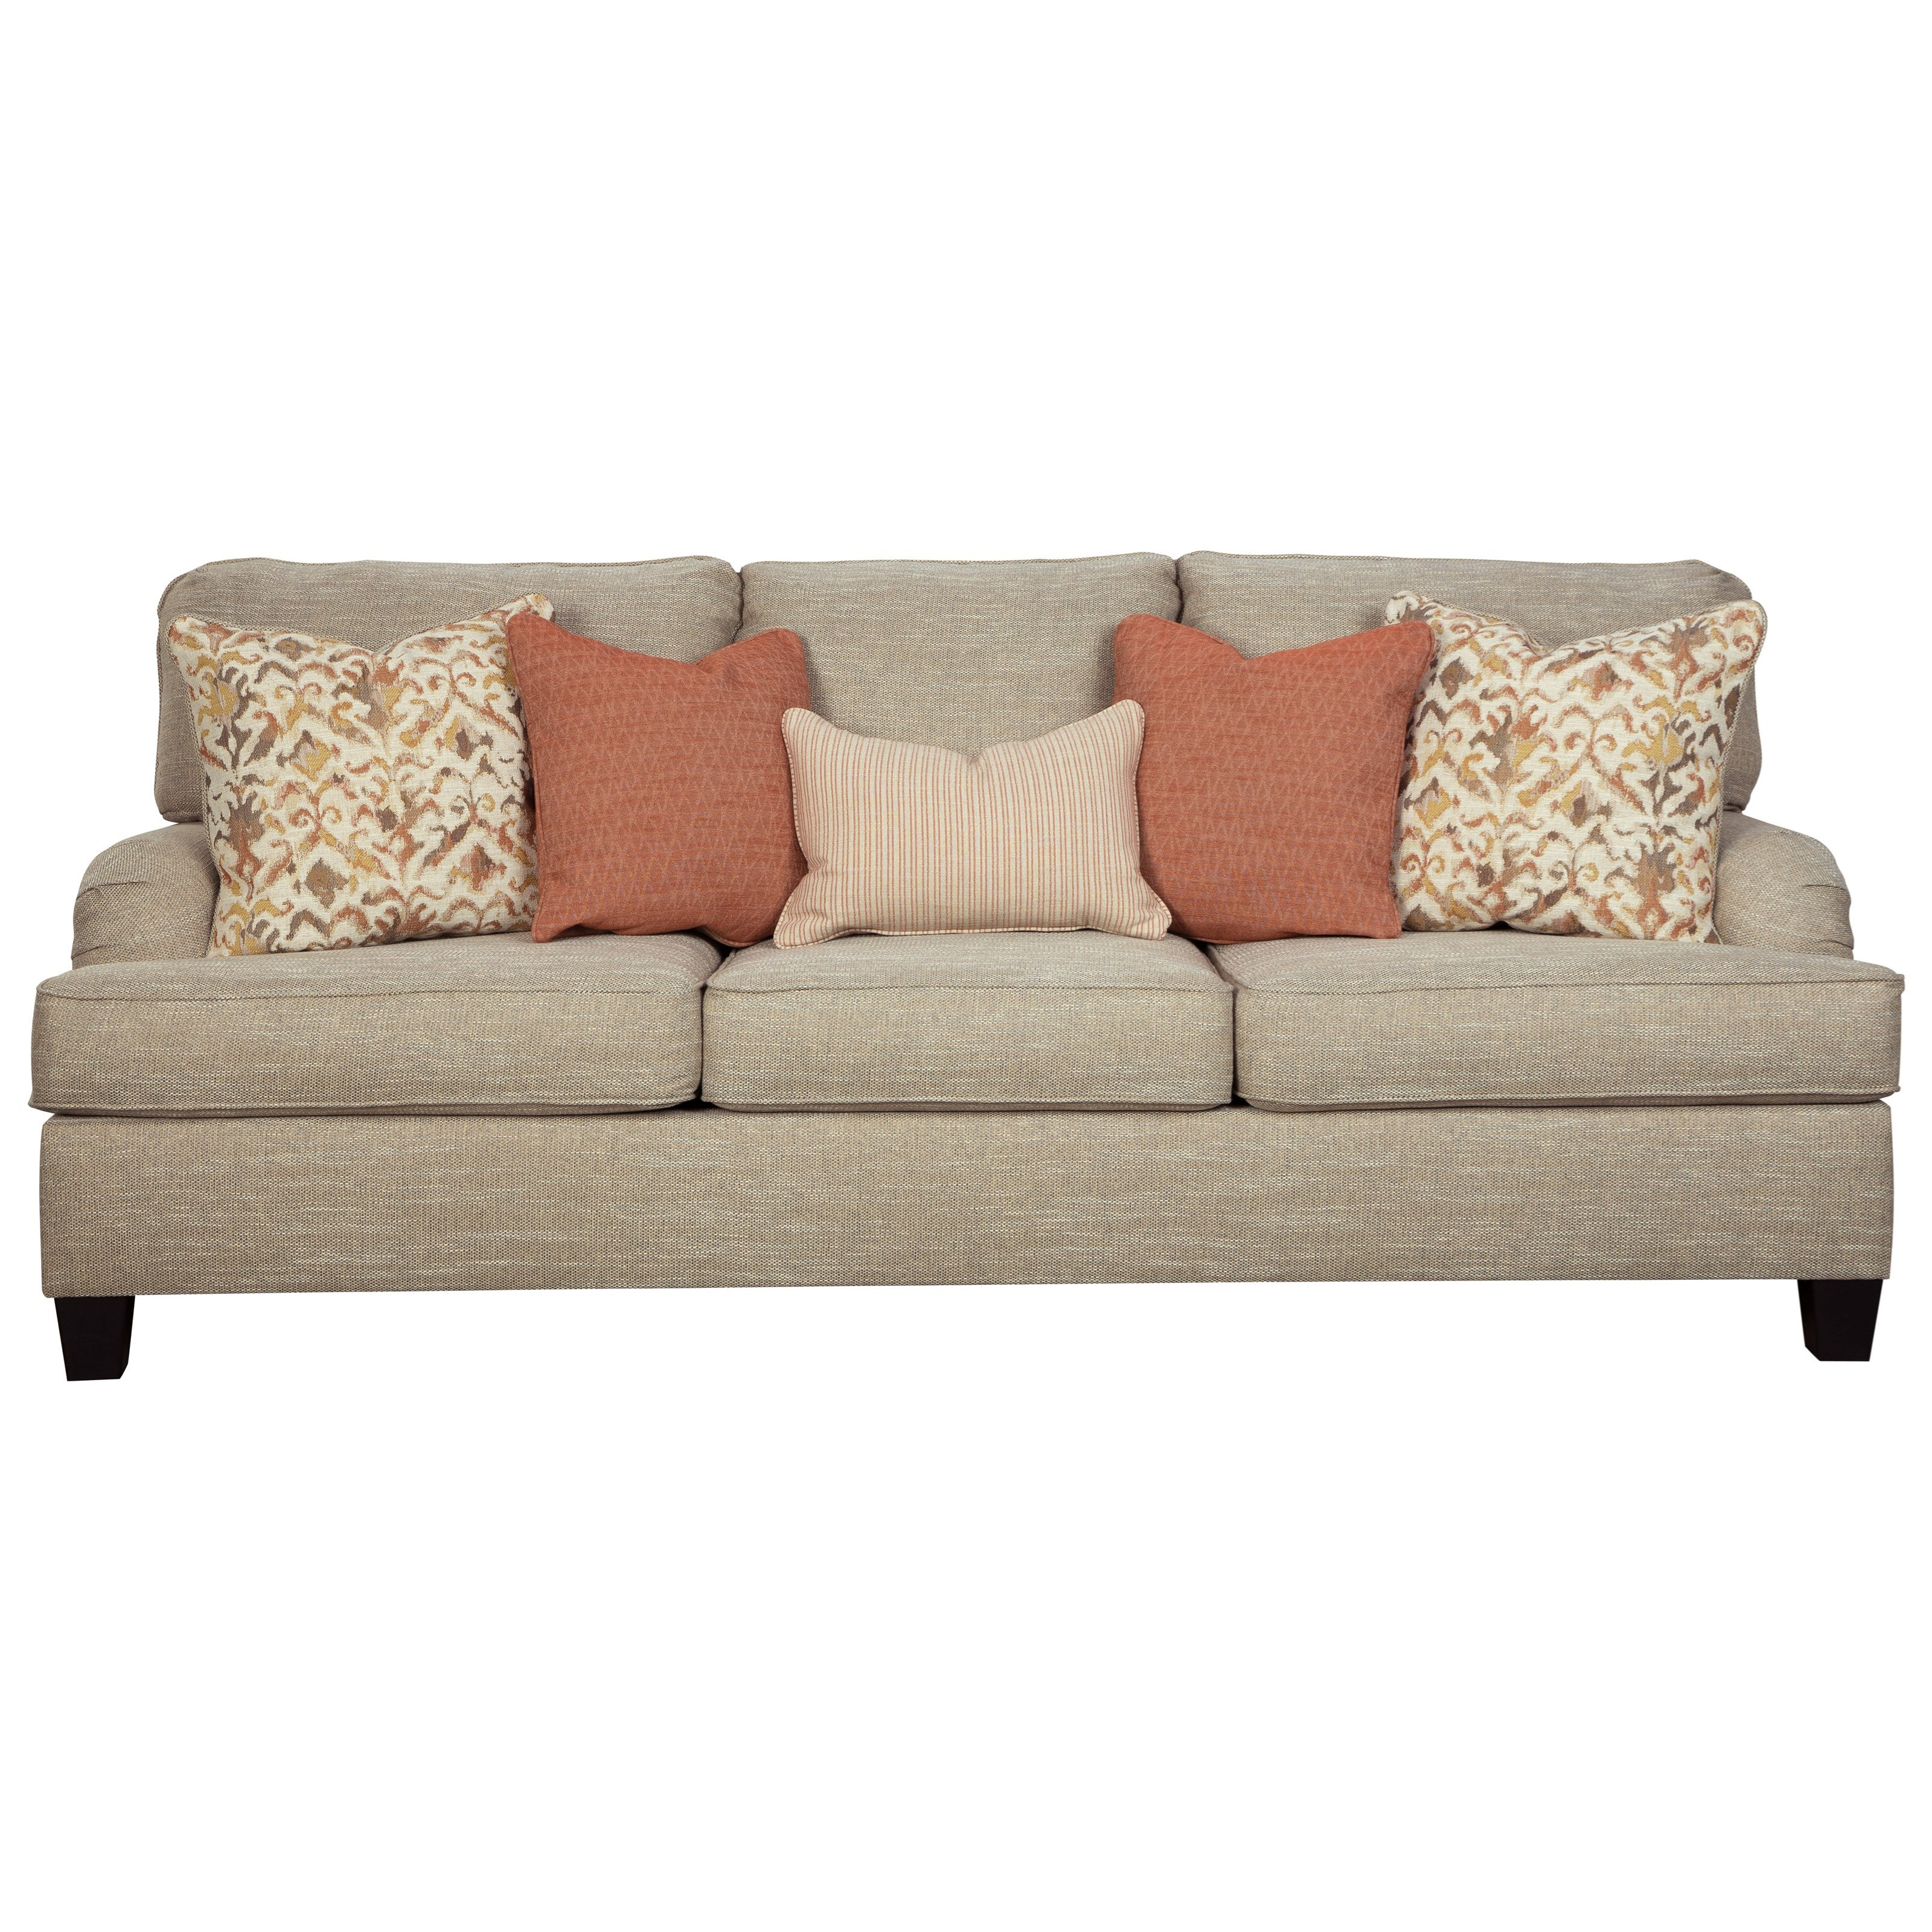 Almanza Queen Sofa Sleeper by Signature Design by Ashley at Household Furniture